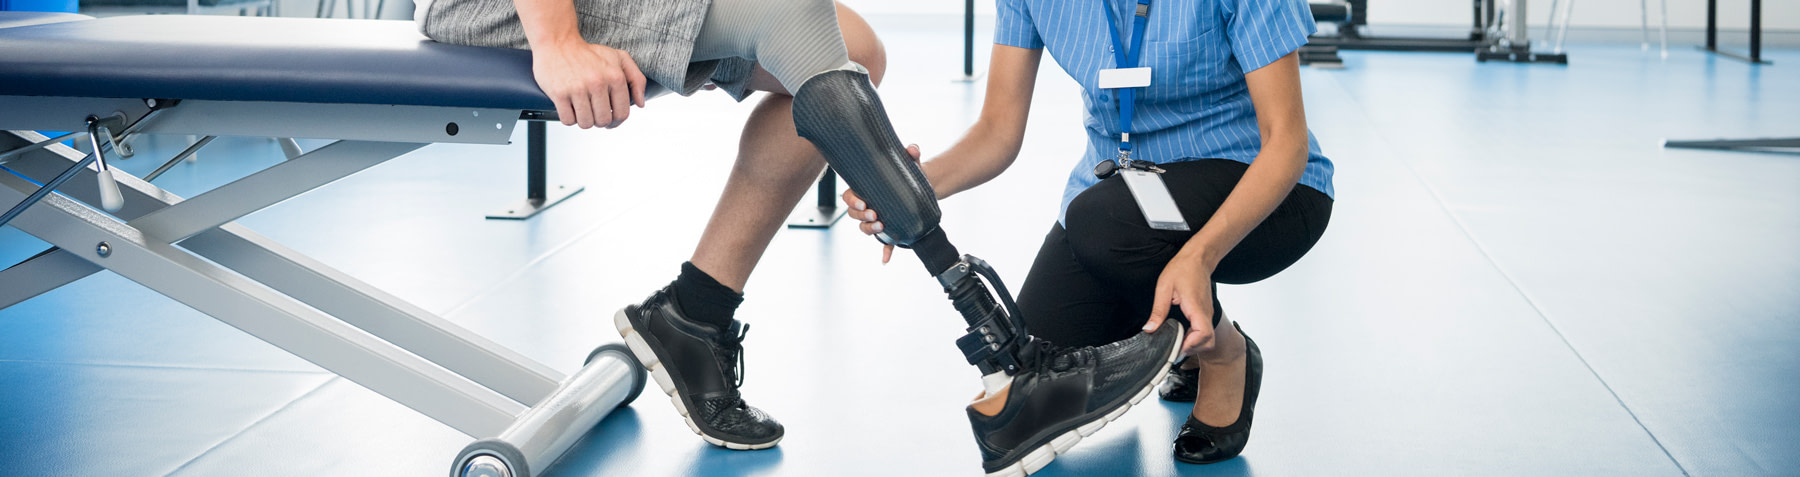 Amputation or lost limb claims